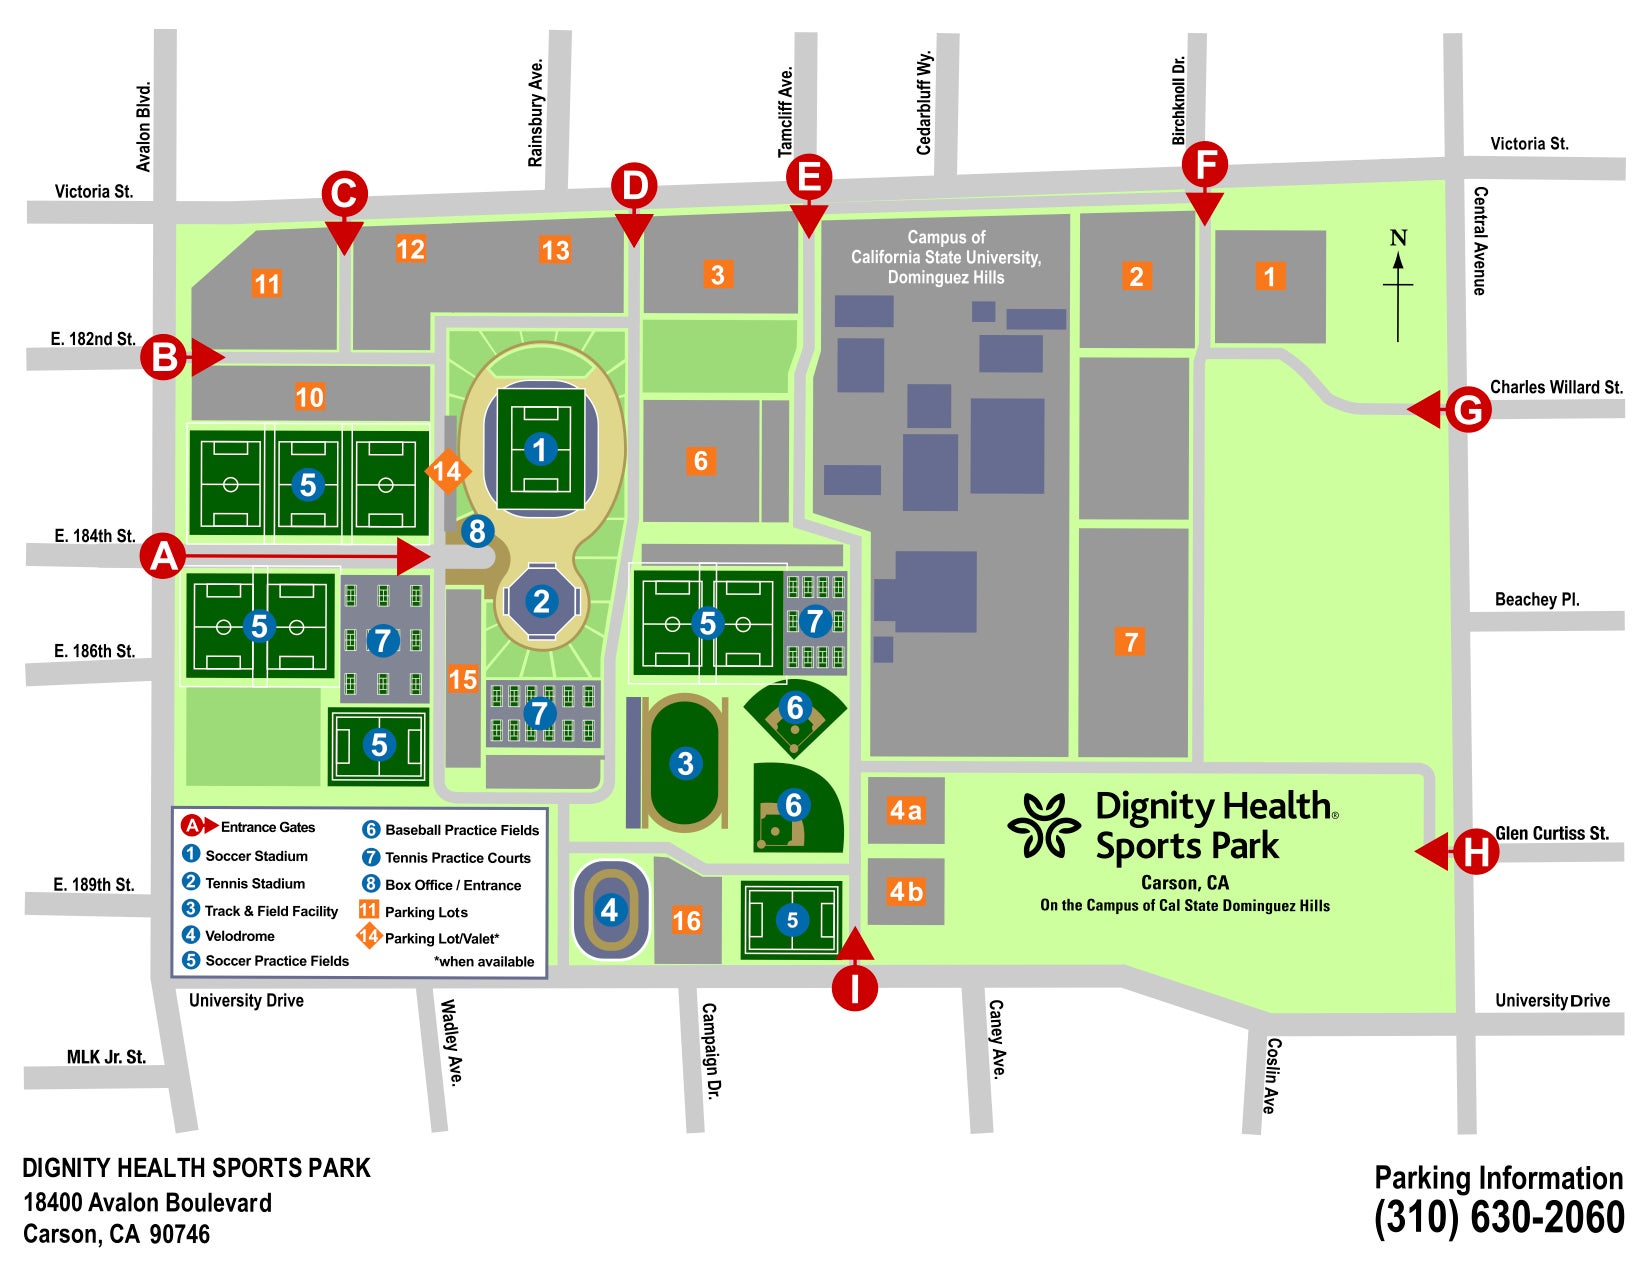 General Parking Information | Dignity Health Sports Park